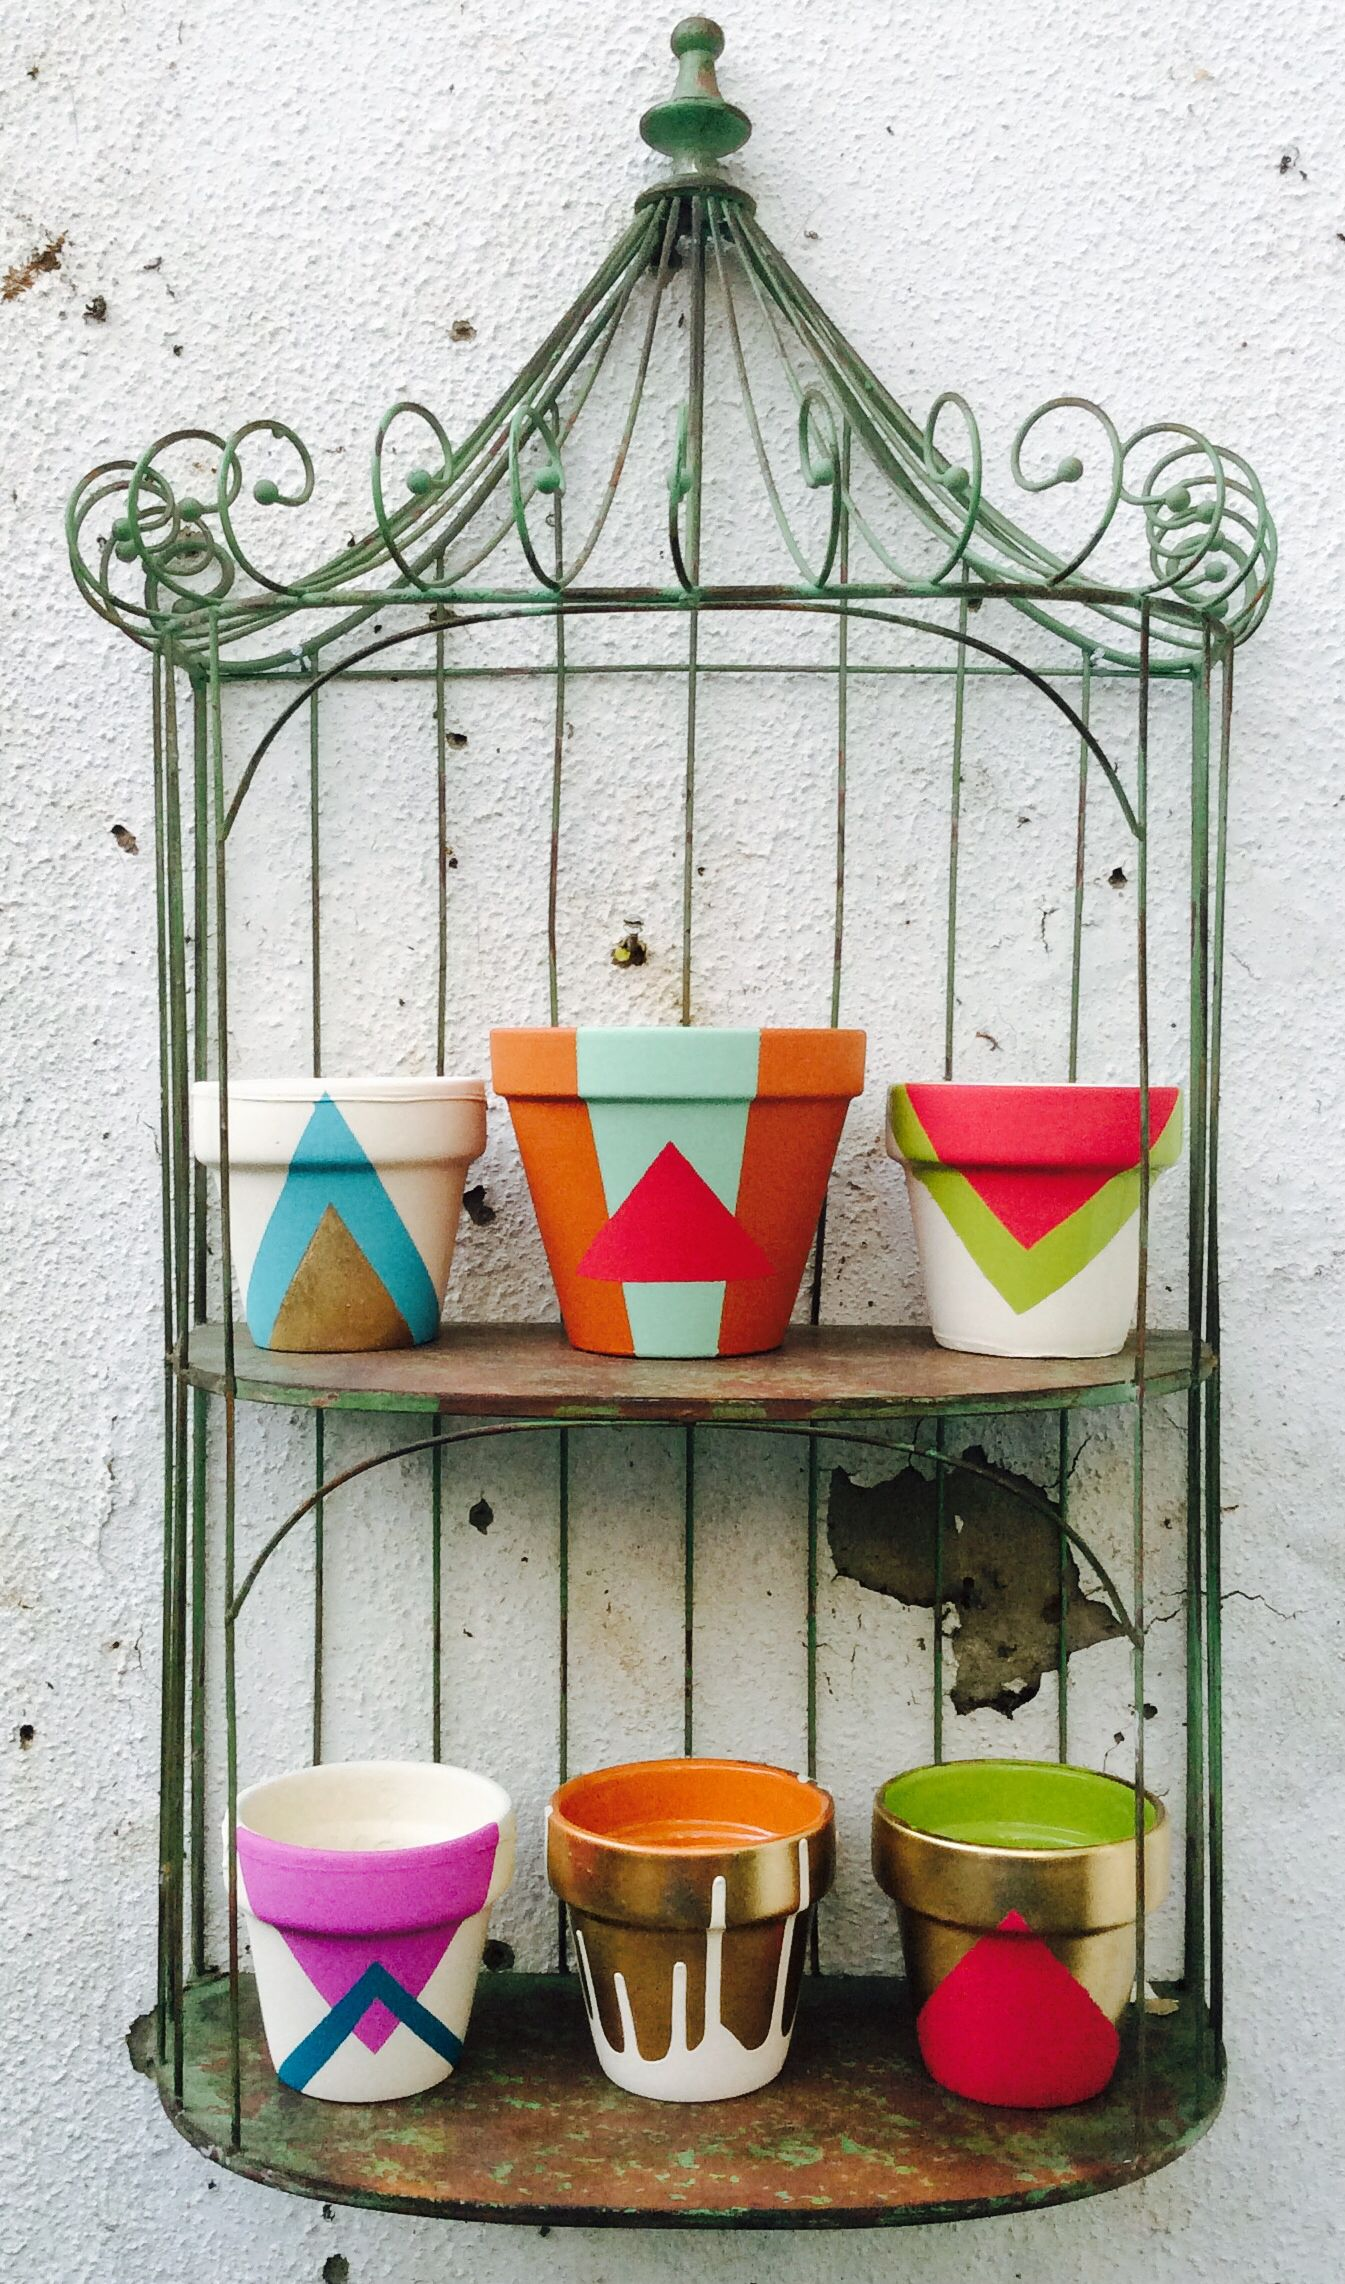 Hand painted funky flower pots using household emulsion paint and spray paint.  sc 1 st  Pinterest & Hand painted funky flower pots using household emulsion paint and ...